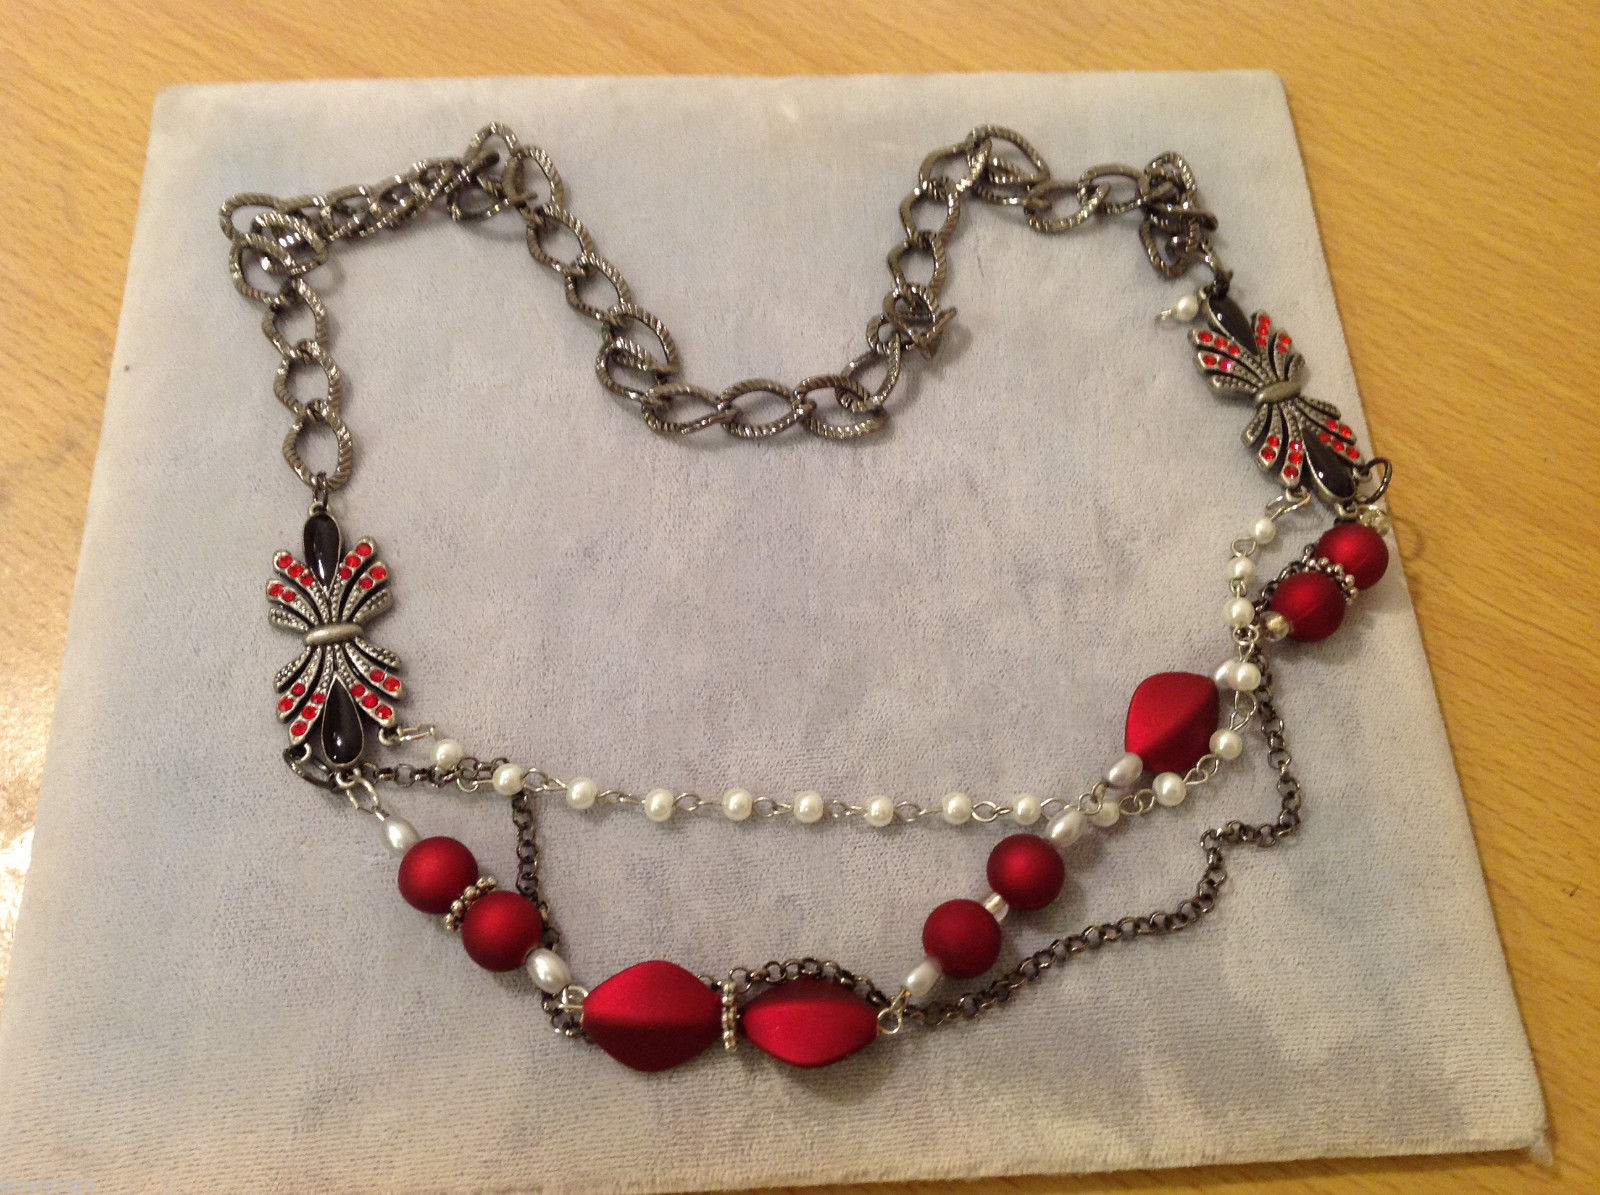 Red Silver Black colored Bead and Metal necklace strand with crystal stones